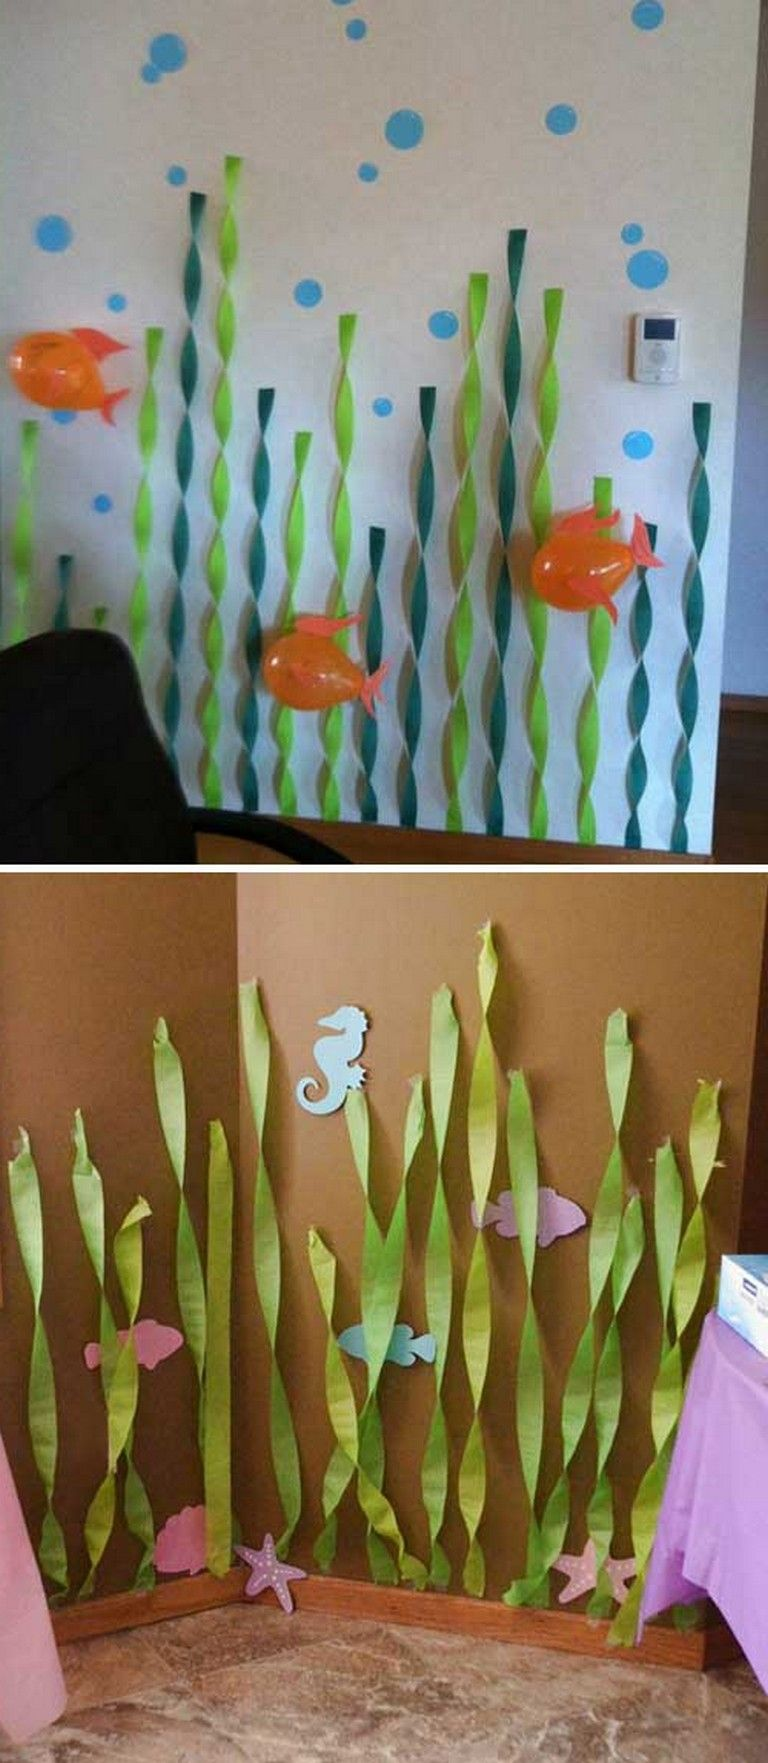 8 Marvelous Under The Sea Decorating Ideas Kids Would Love Underwater Sea Decoratingideas Under The Sea Decorations Sea Theme Under The Sea Crafts